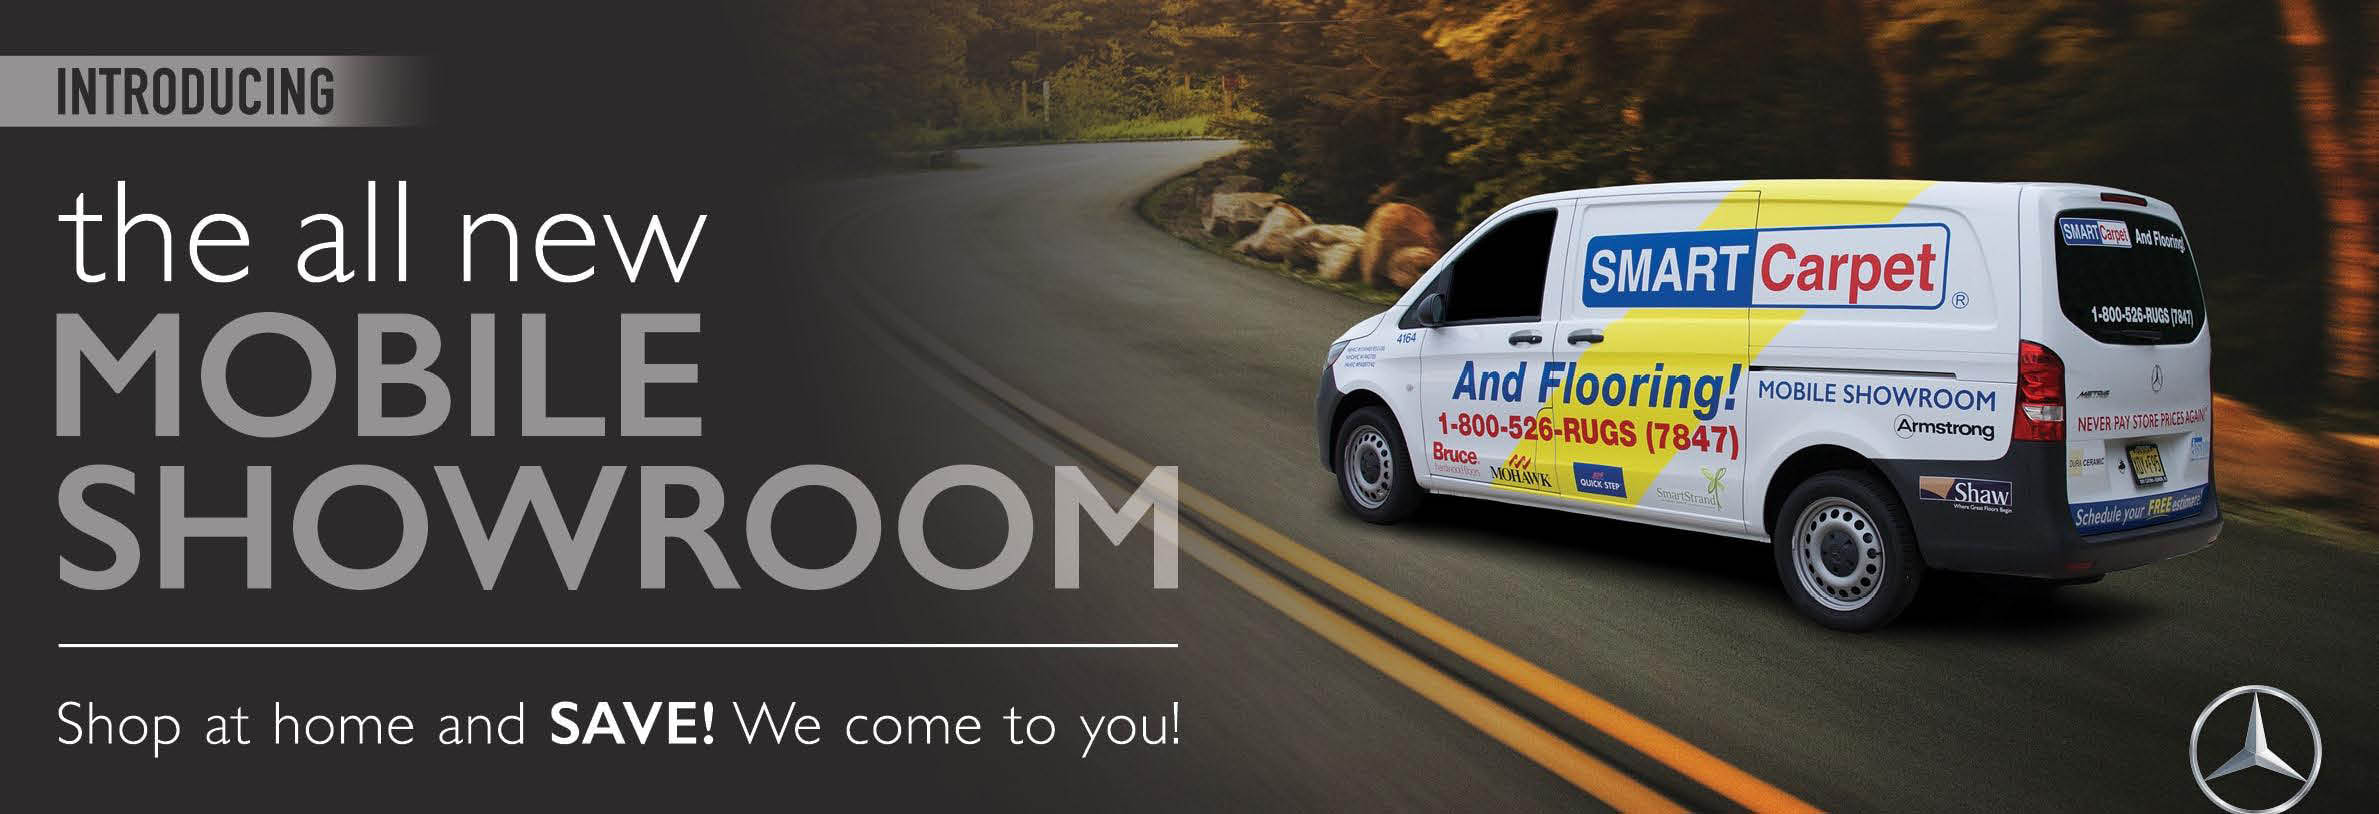 Smart Carpet and Flooring Mobile Showroom - we come to your home